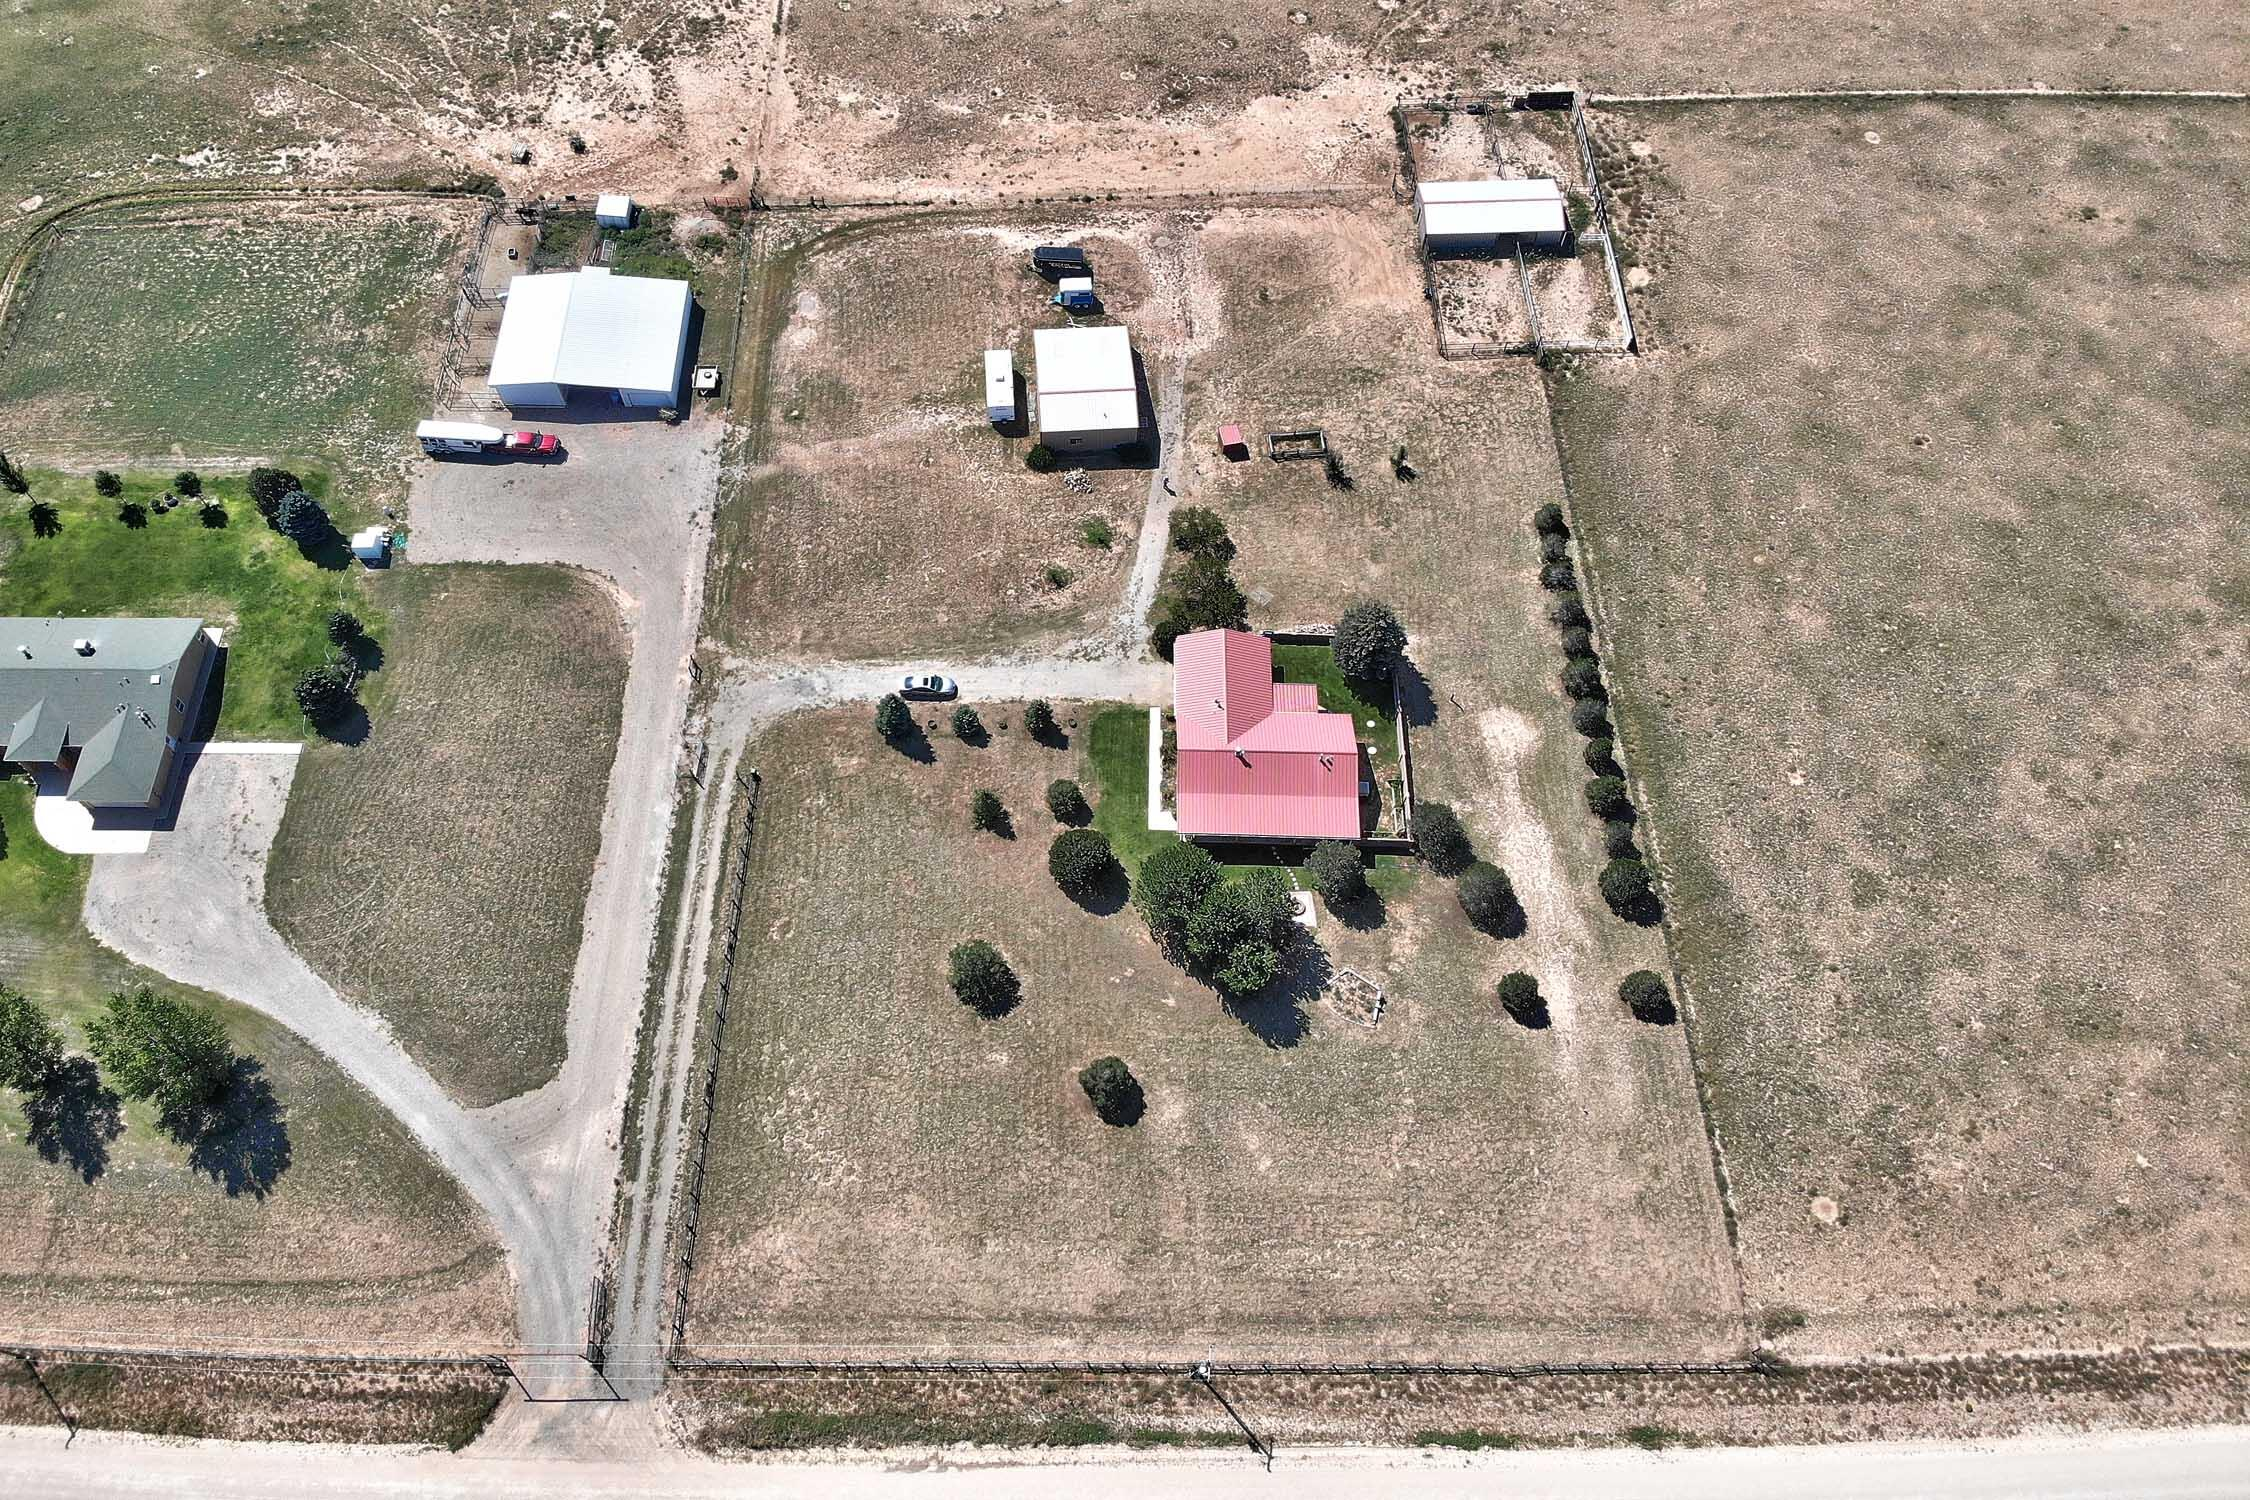 This beautiful New Mexico horse property on 20 acres is in Moriarty with easy access to I40. Albuquerque is about 30 minutes away and Santa Fe about an hour. This property has it all for your family's dream home. The well (391ft) was drilled one year ago! New pump and new pressure tank! A large shop for 4 vehicles or a boat includes two roll-up doors and plenty of storage space for all you toys or equipment! The horse barn has storage area for hay,  plus stalls and a corral. Enjoy 3 bedrooms and 2 full baths, a large living and dining room and a open kitchen with breakfast bar. The landscaping is lovely with big trees and back yard is walled. The sun room is the perfect place to watch the sun go down over the Sandia Mountains.